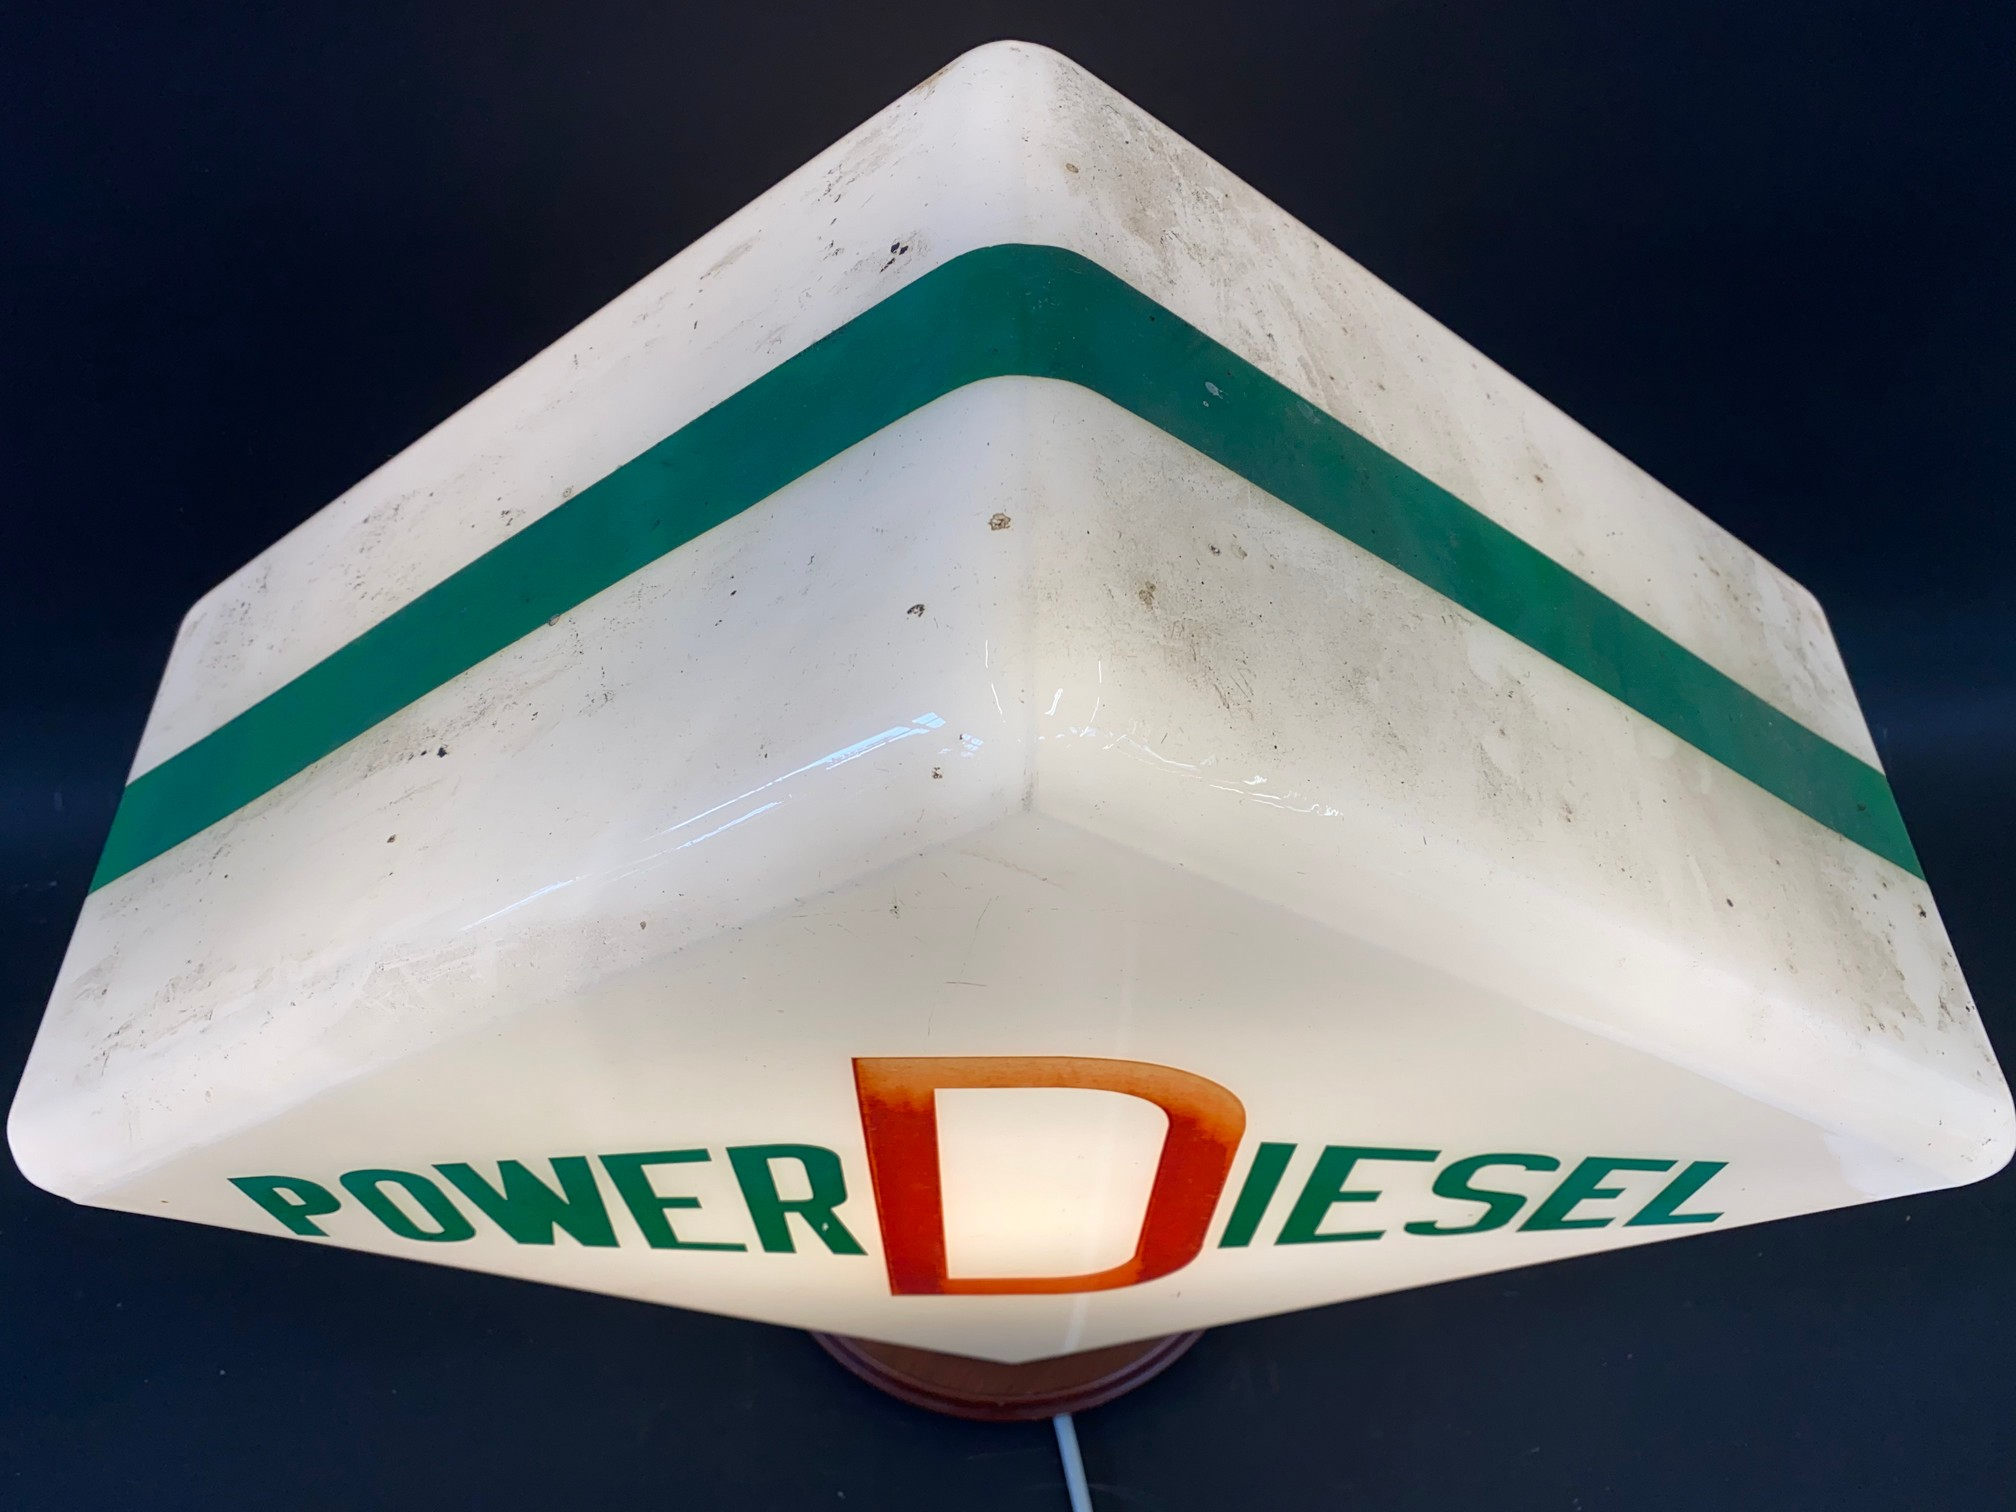 A Power Diesel lozenge shaped glass petrol pump globe by Hailware, indistinctly stamped 'Property of - Image 3 of 4